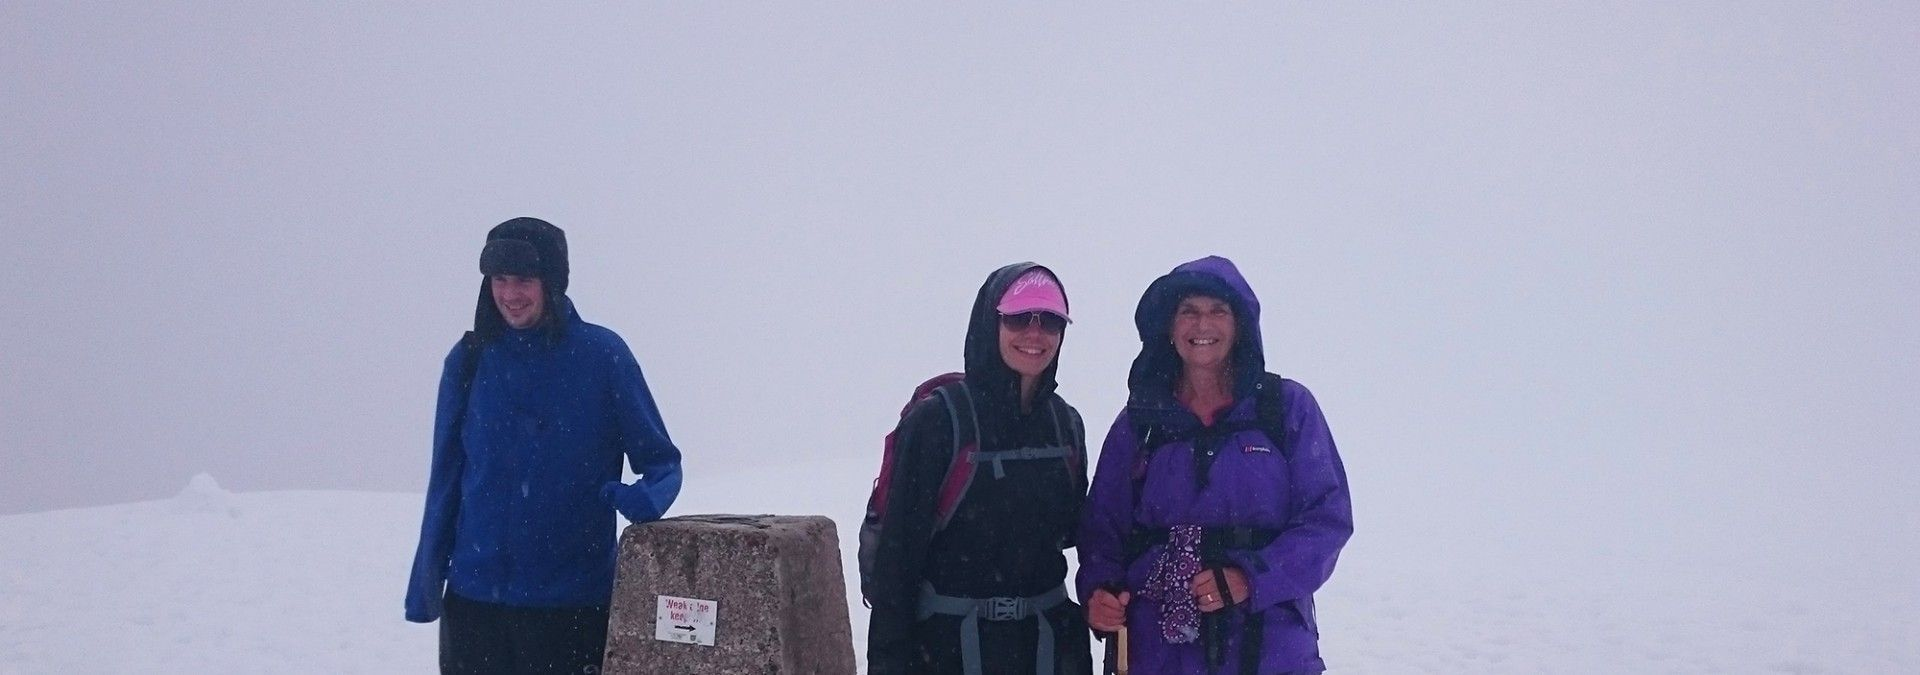 At_summit_of_Ben_Nevis_in_snow.jpg